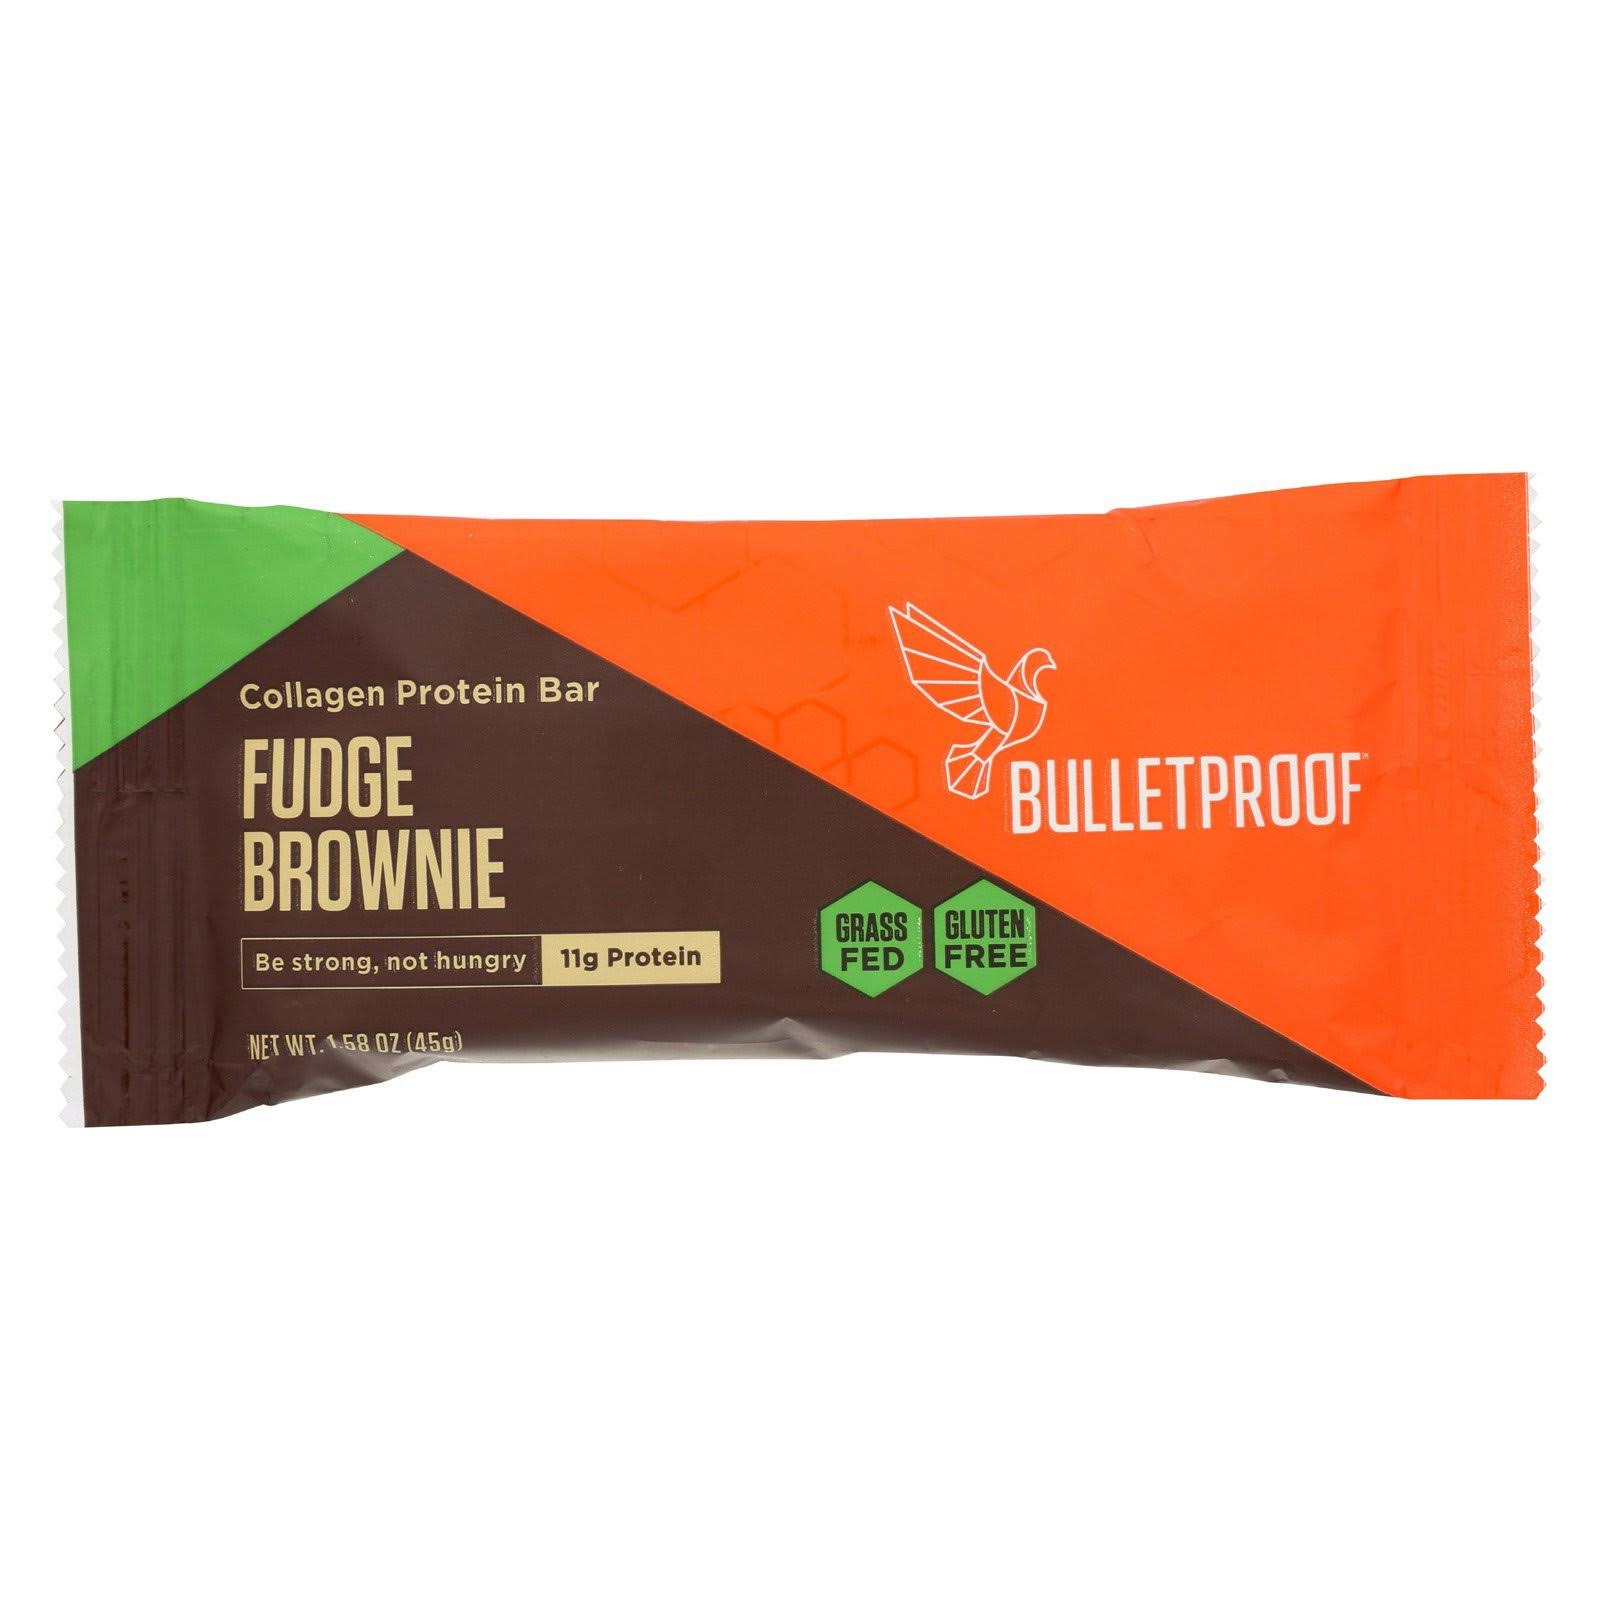 Bulletproof Protein Bar, Collagen, Fudge Brownie - 1.58 oz